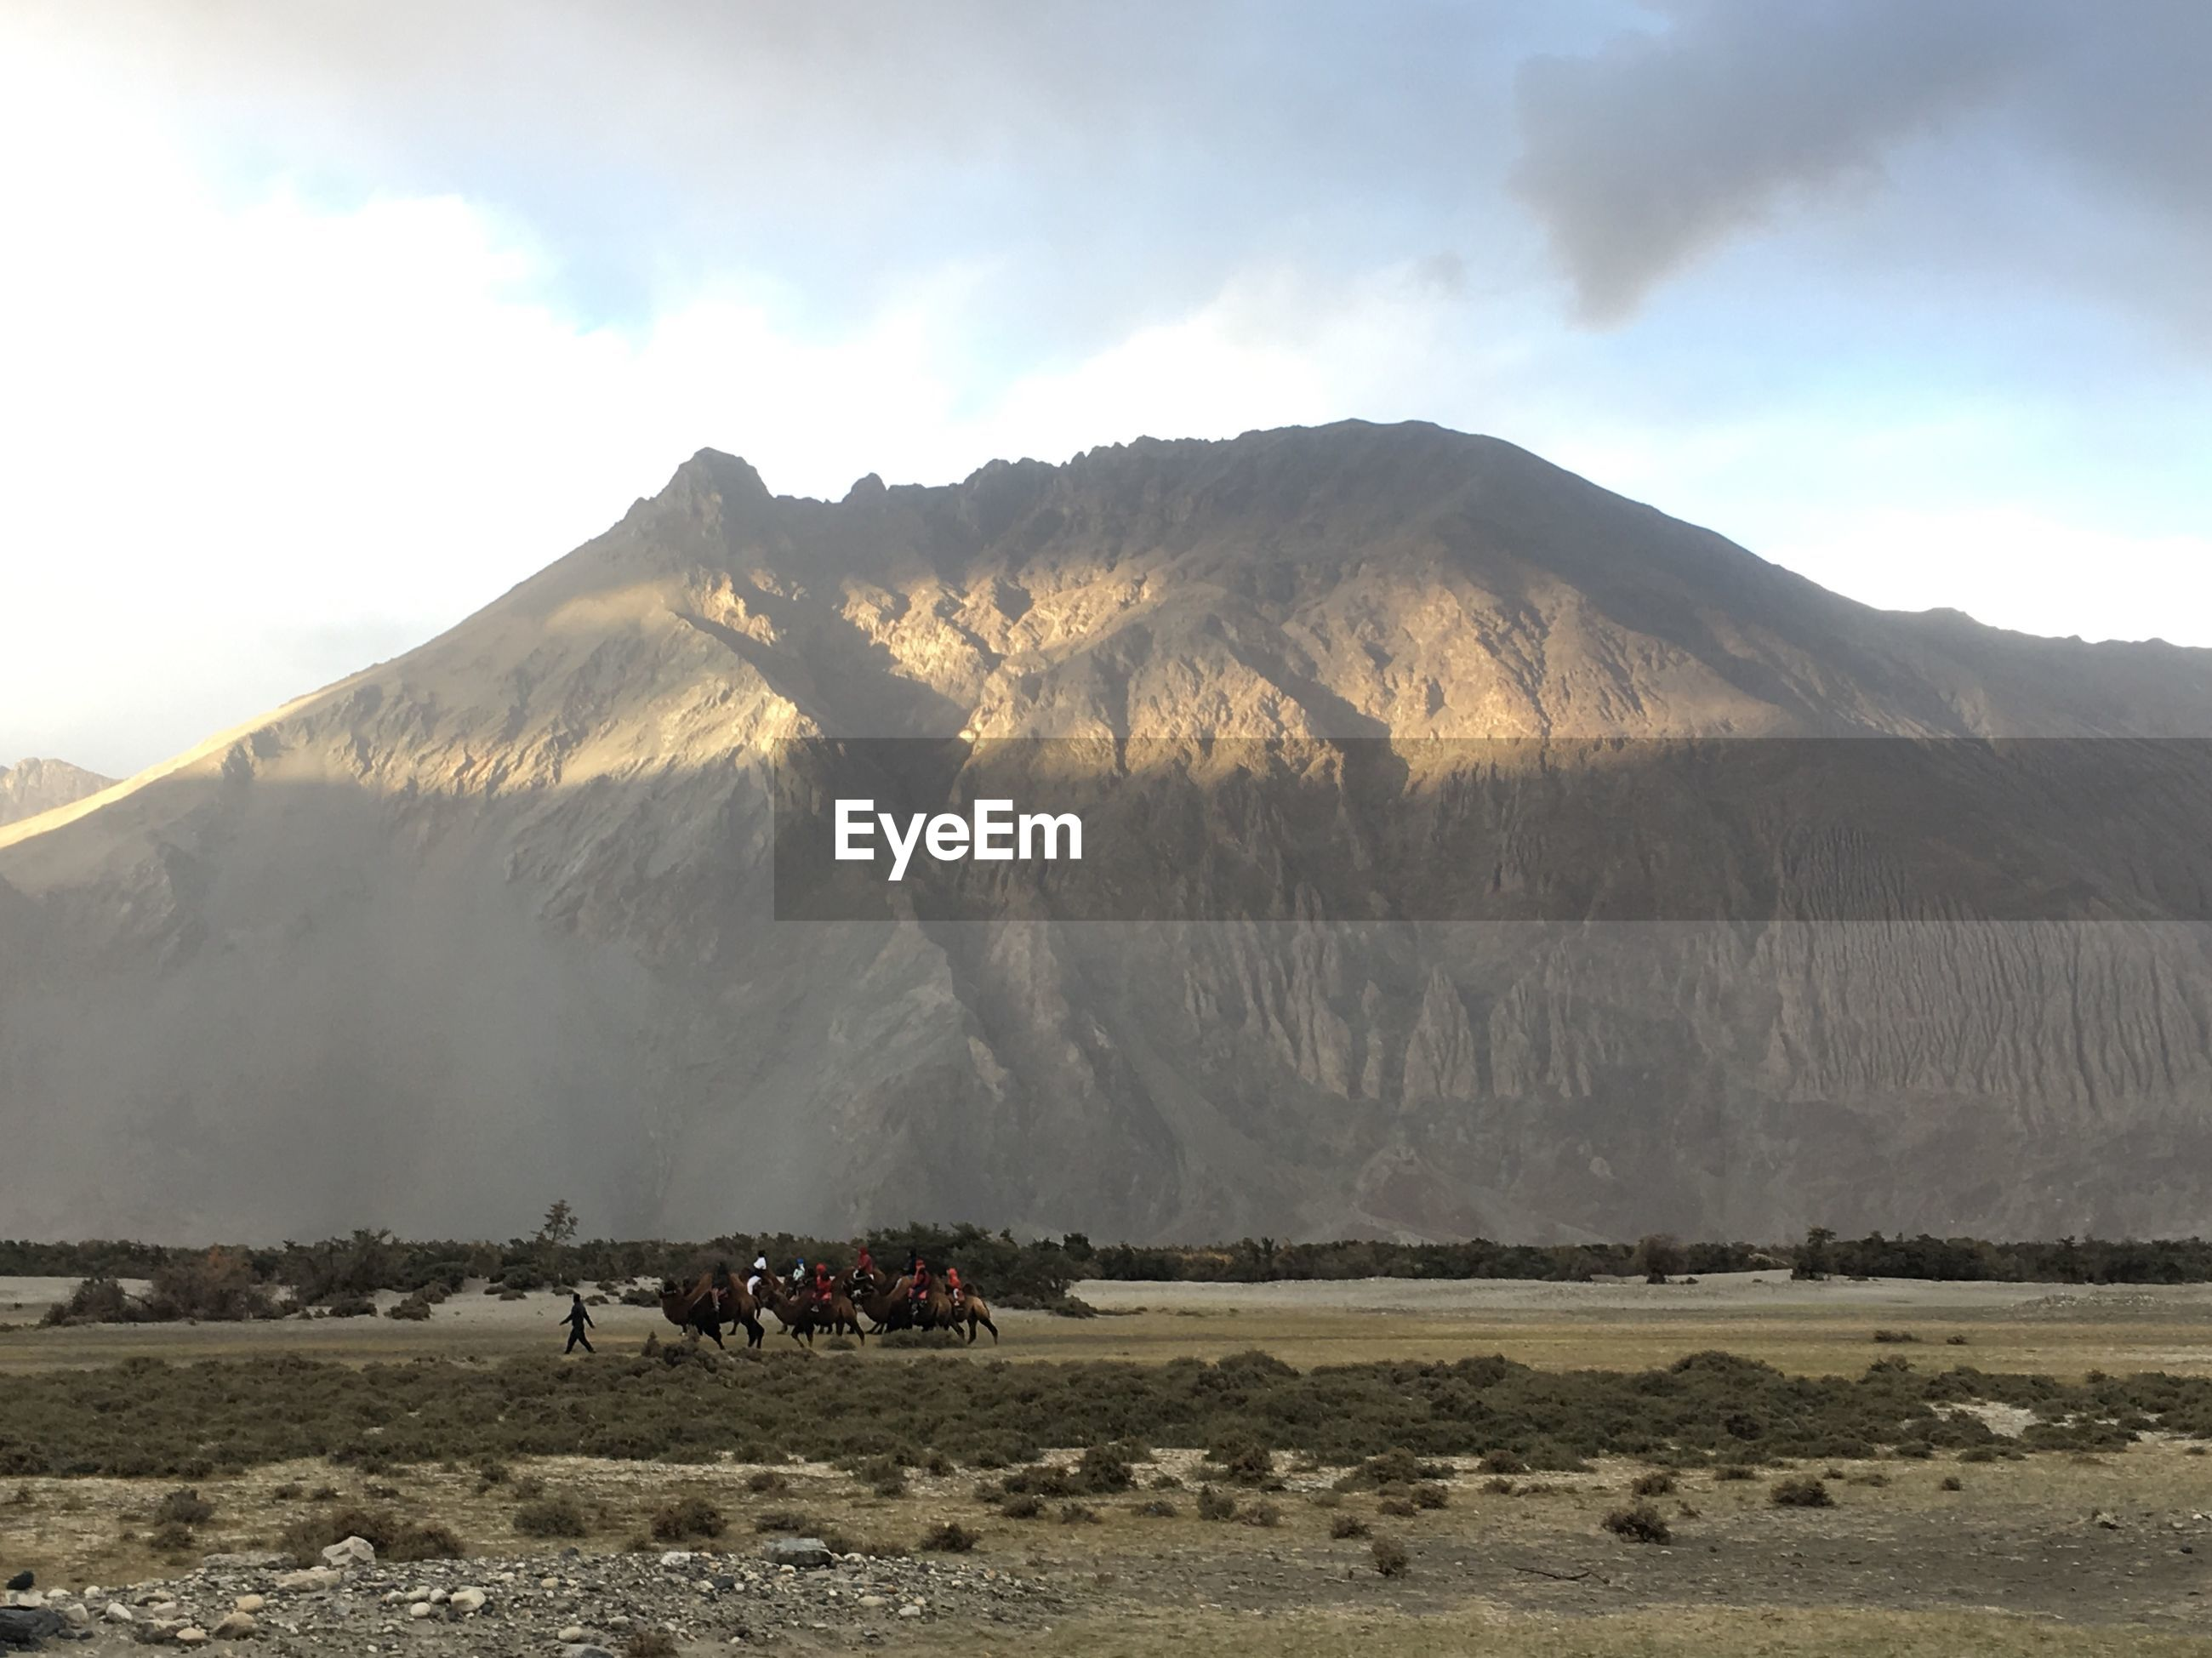 VIEW OF PEOPLE RIDING HORSE ON LANDSCAPE